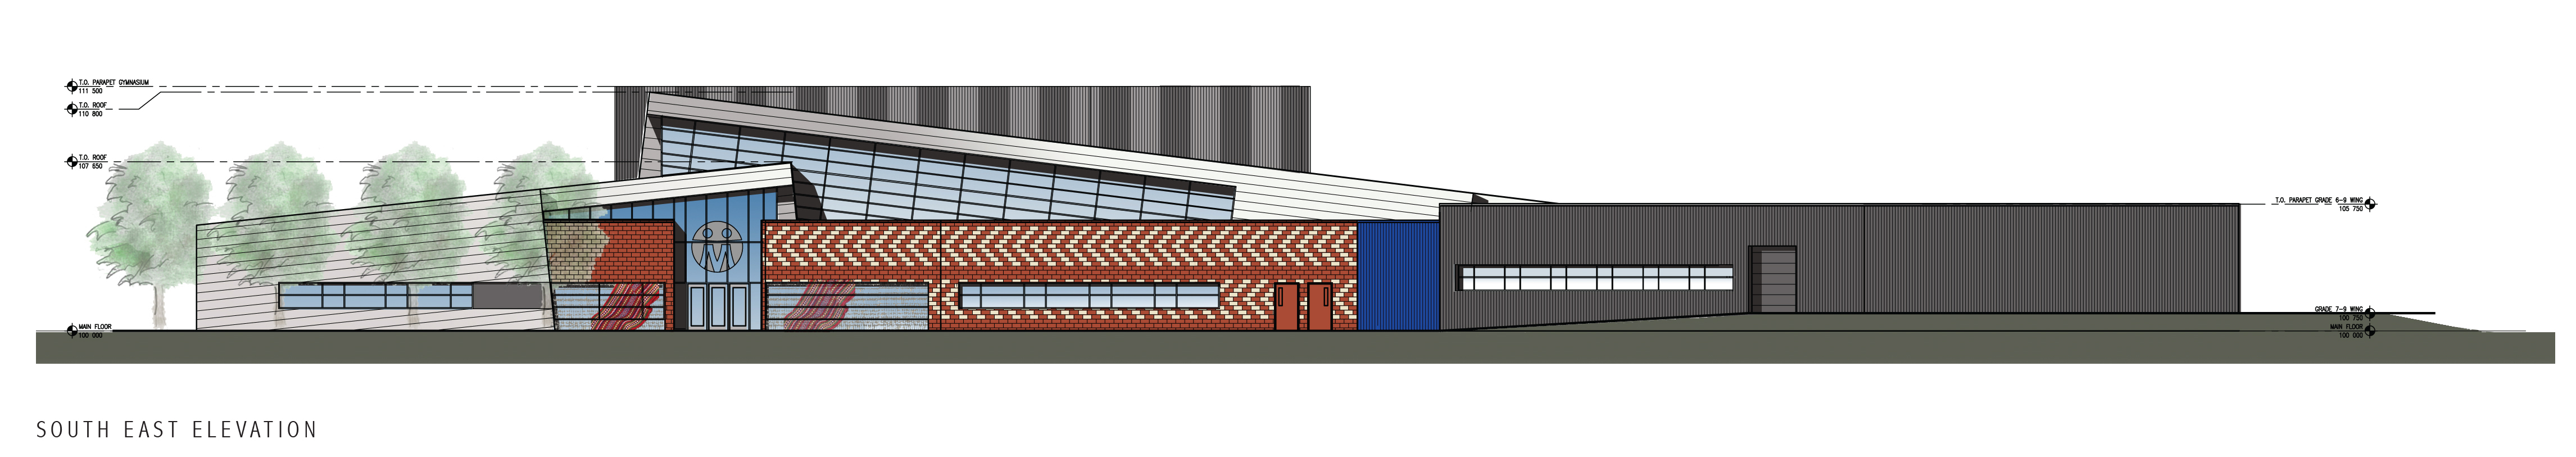 Front Entry Elevation To Gift Lake Replacement School Used With Permission By Group2 Architecture And